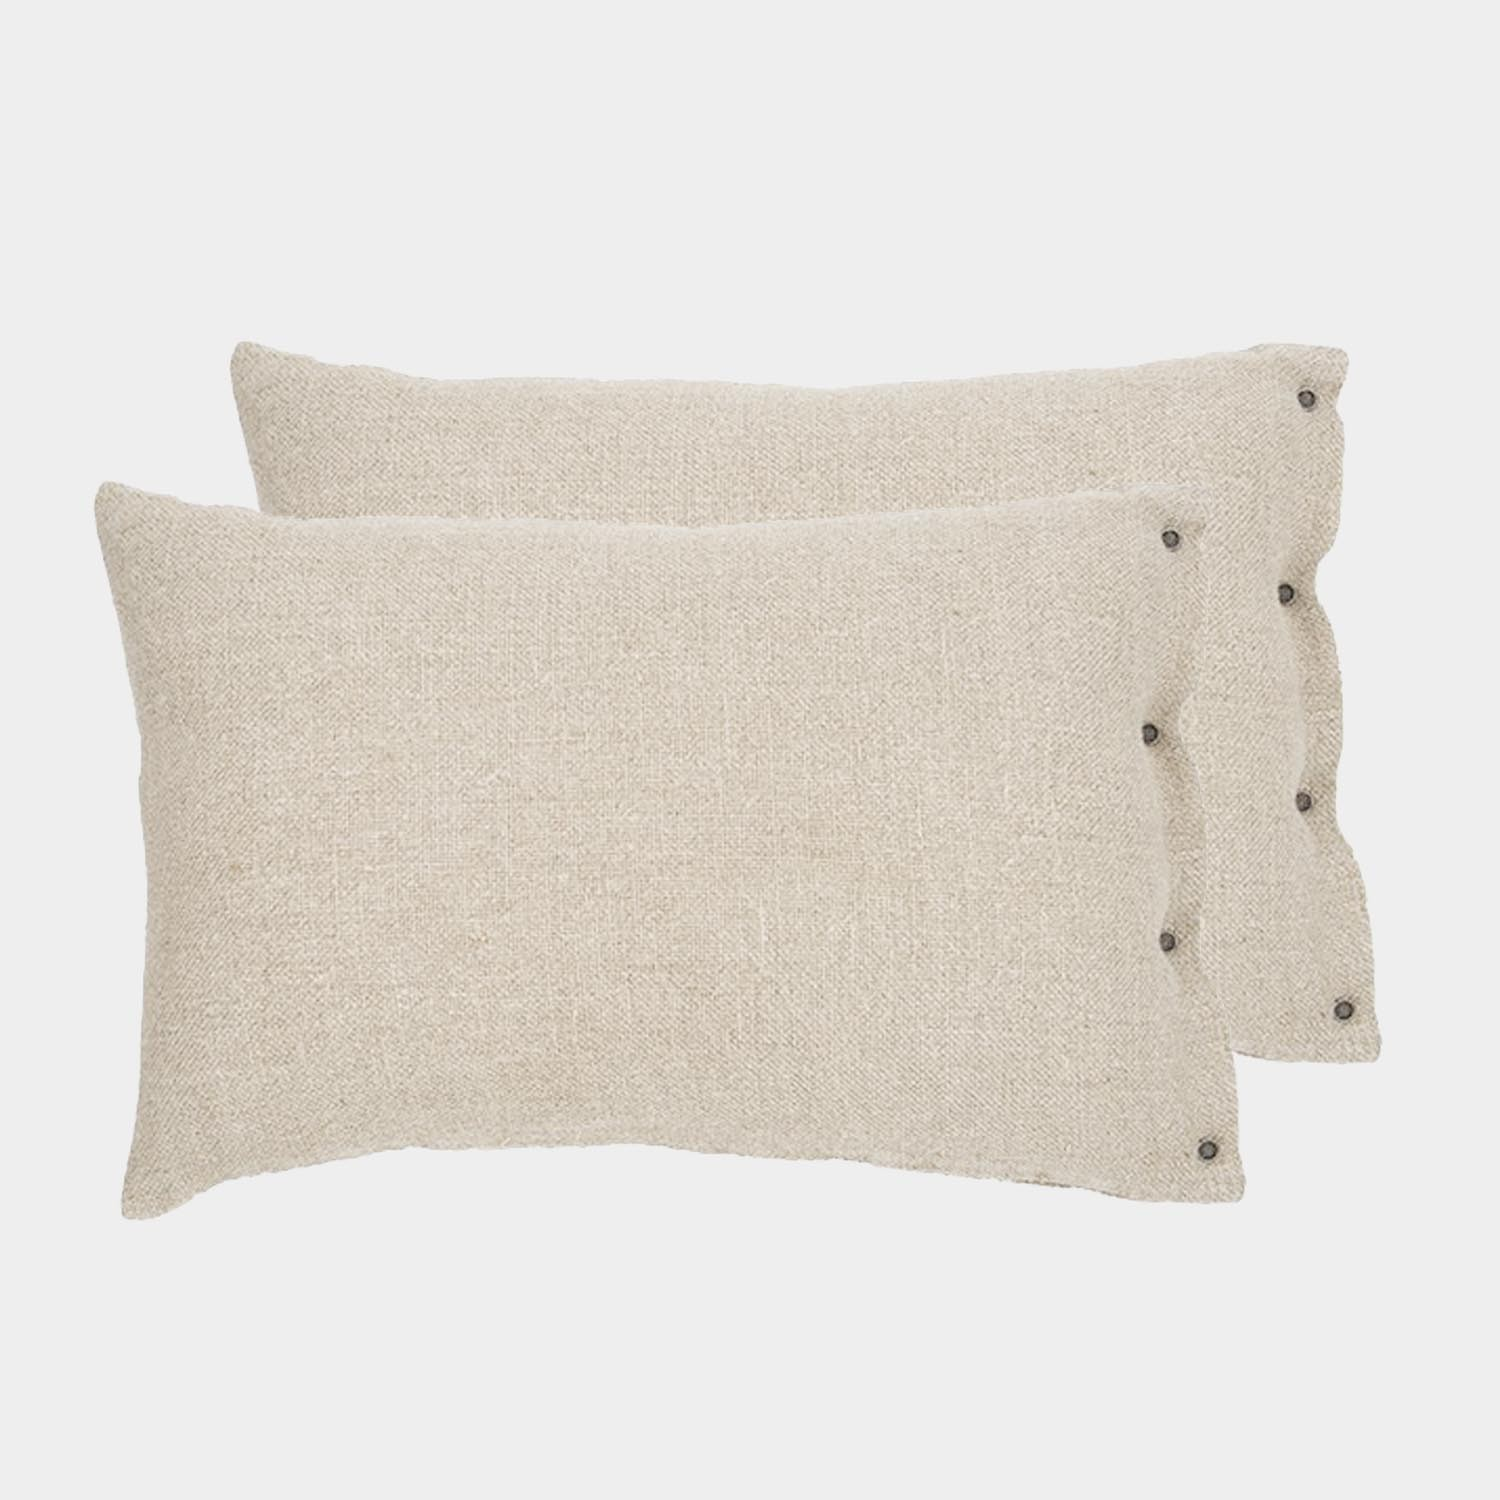 Pair of Rustic Linen Cushion Covers Ivory